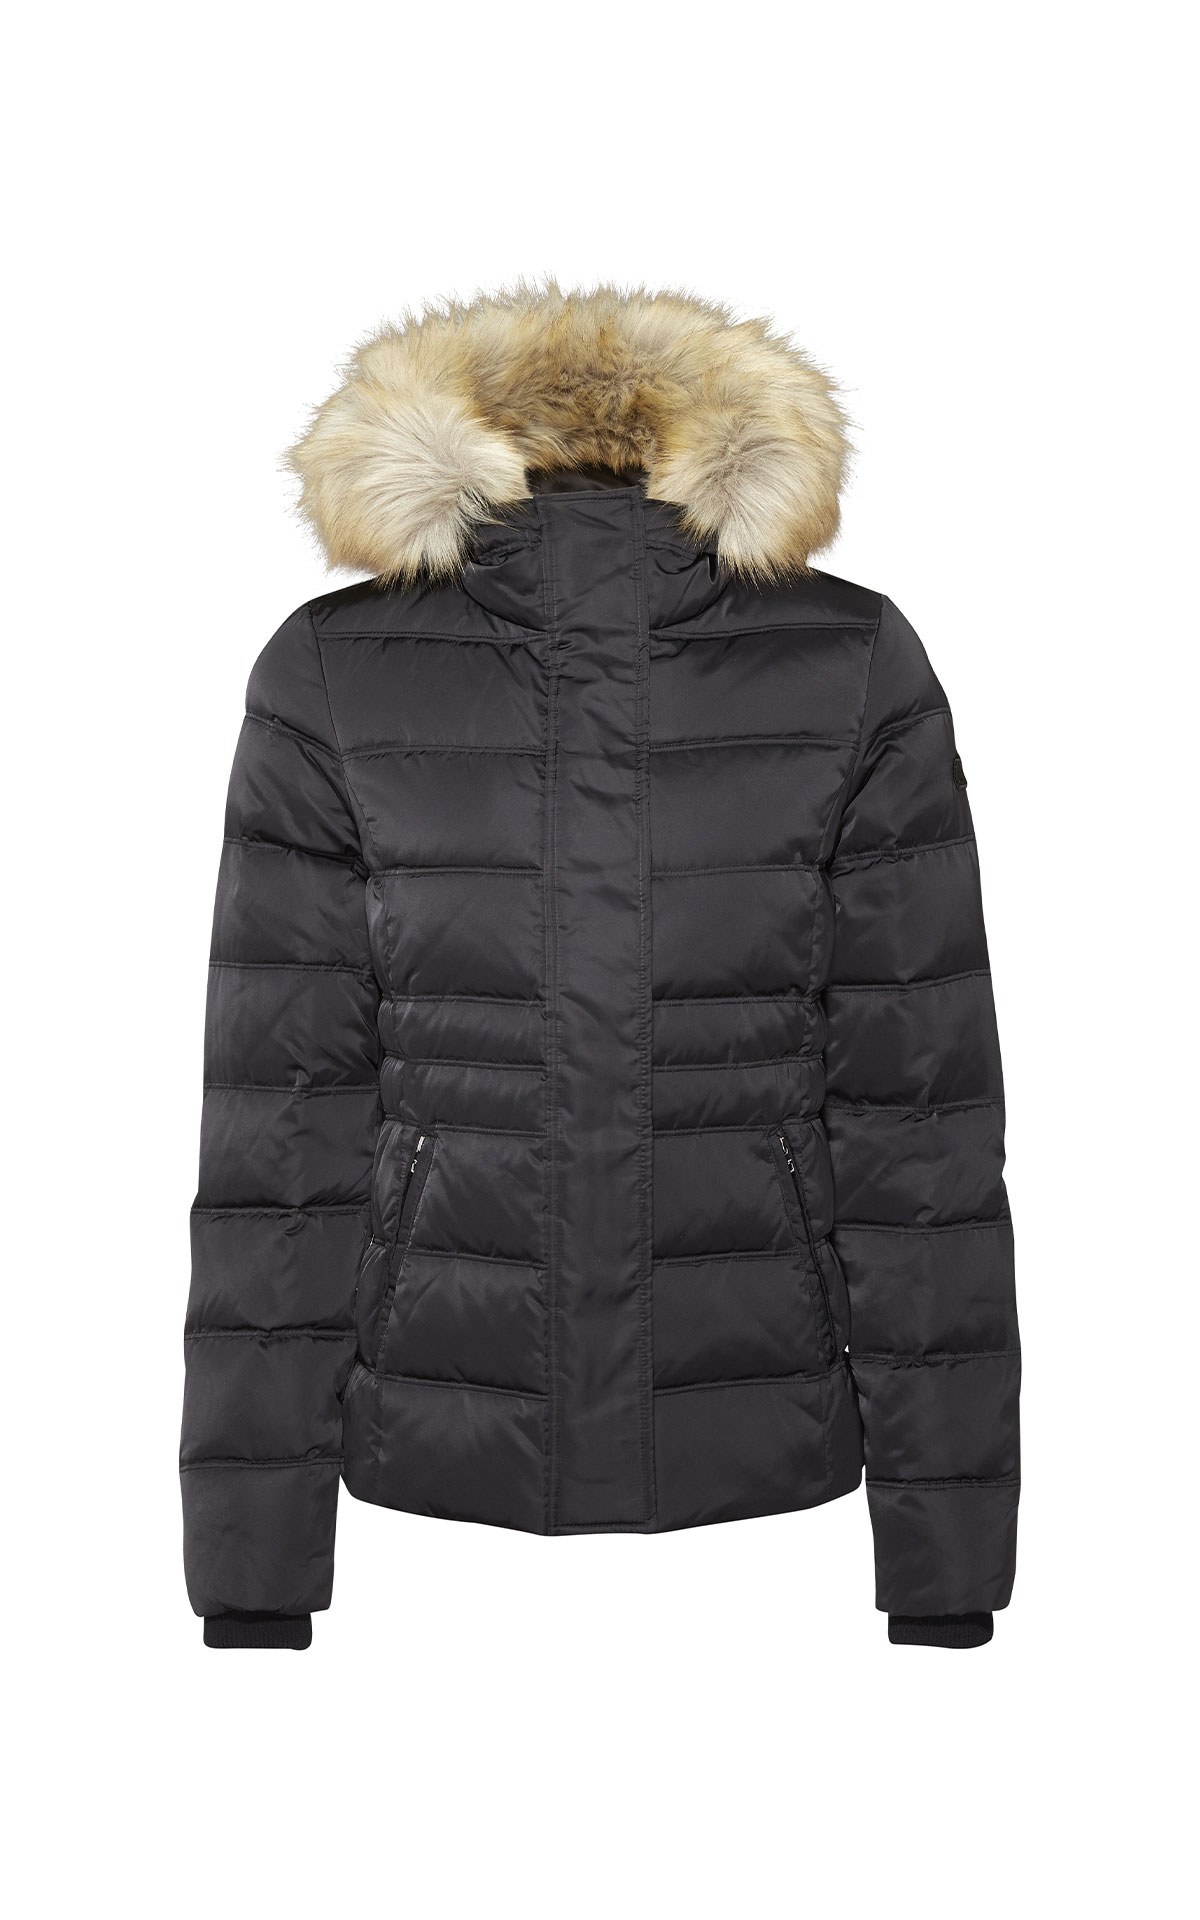 Calvin Klein Jeans Short puffer black beauty from Kildare Village